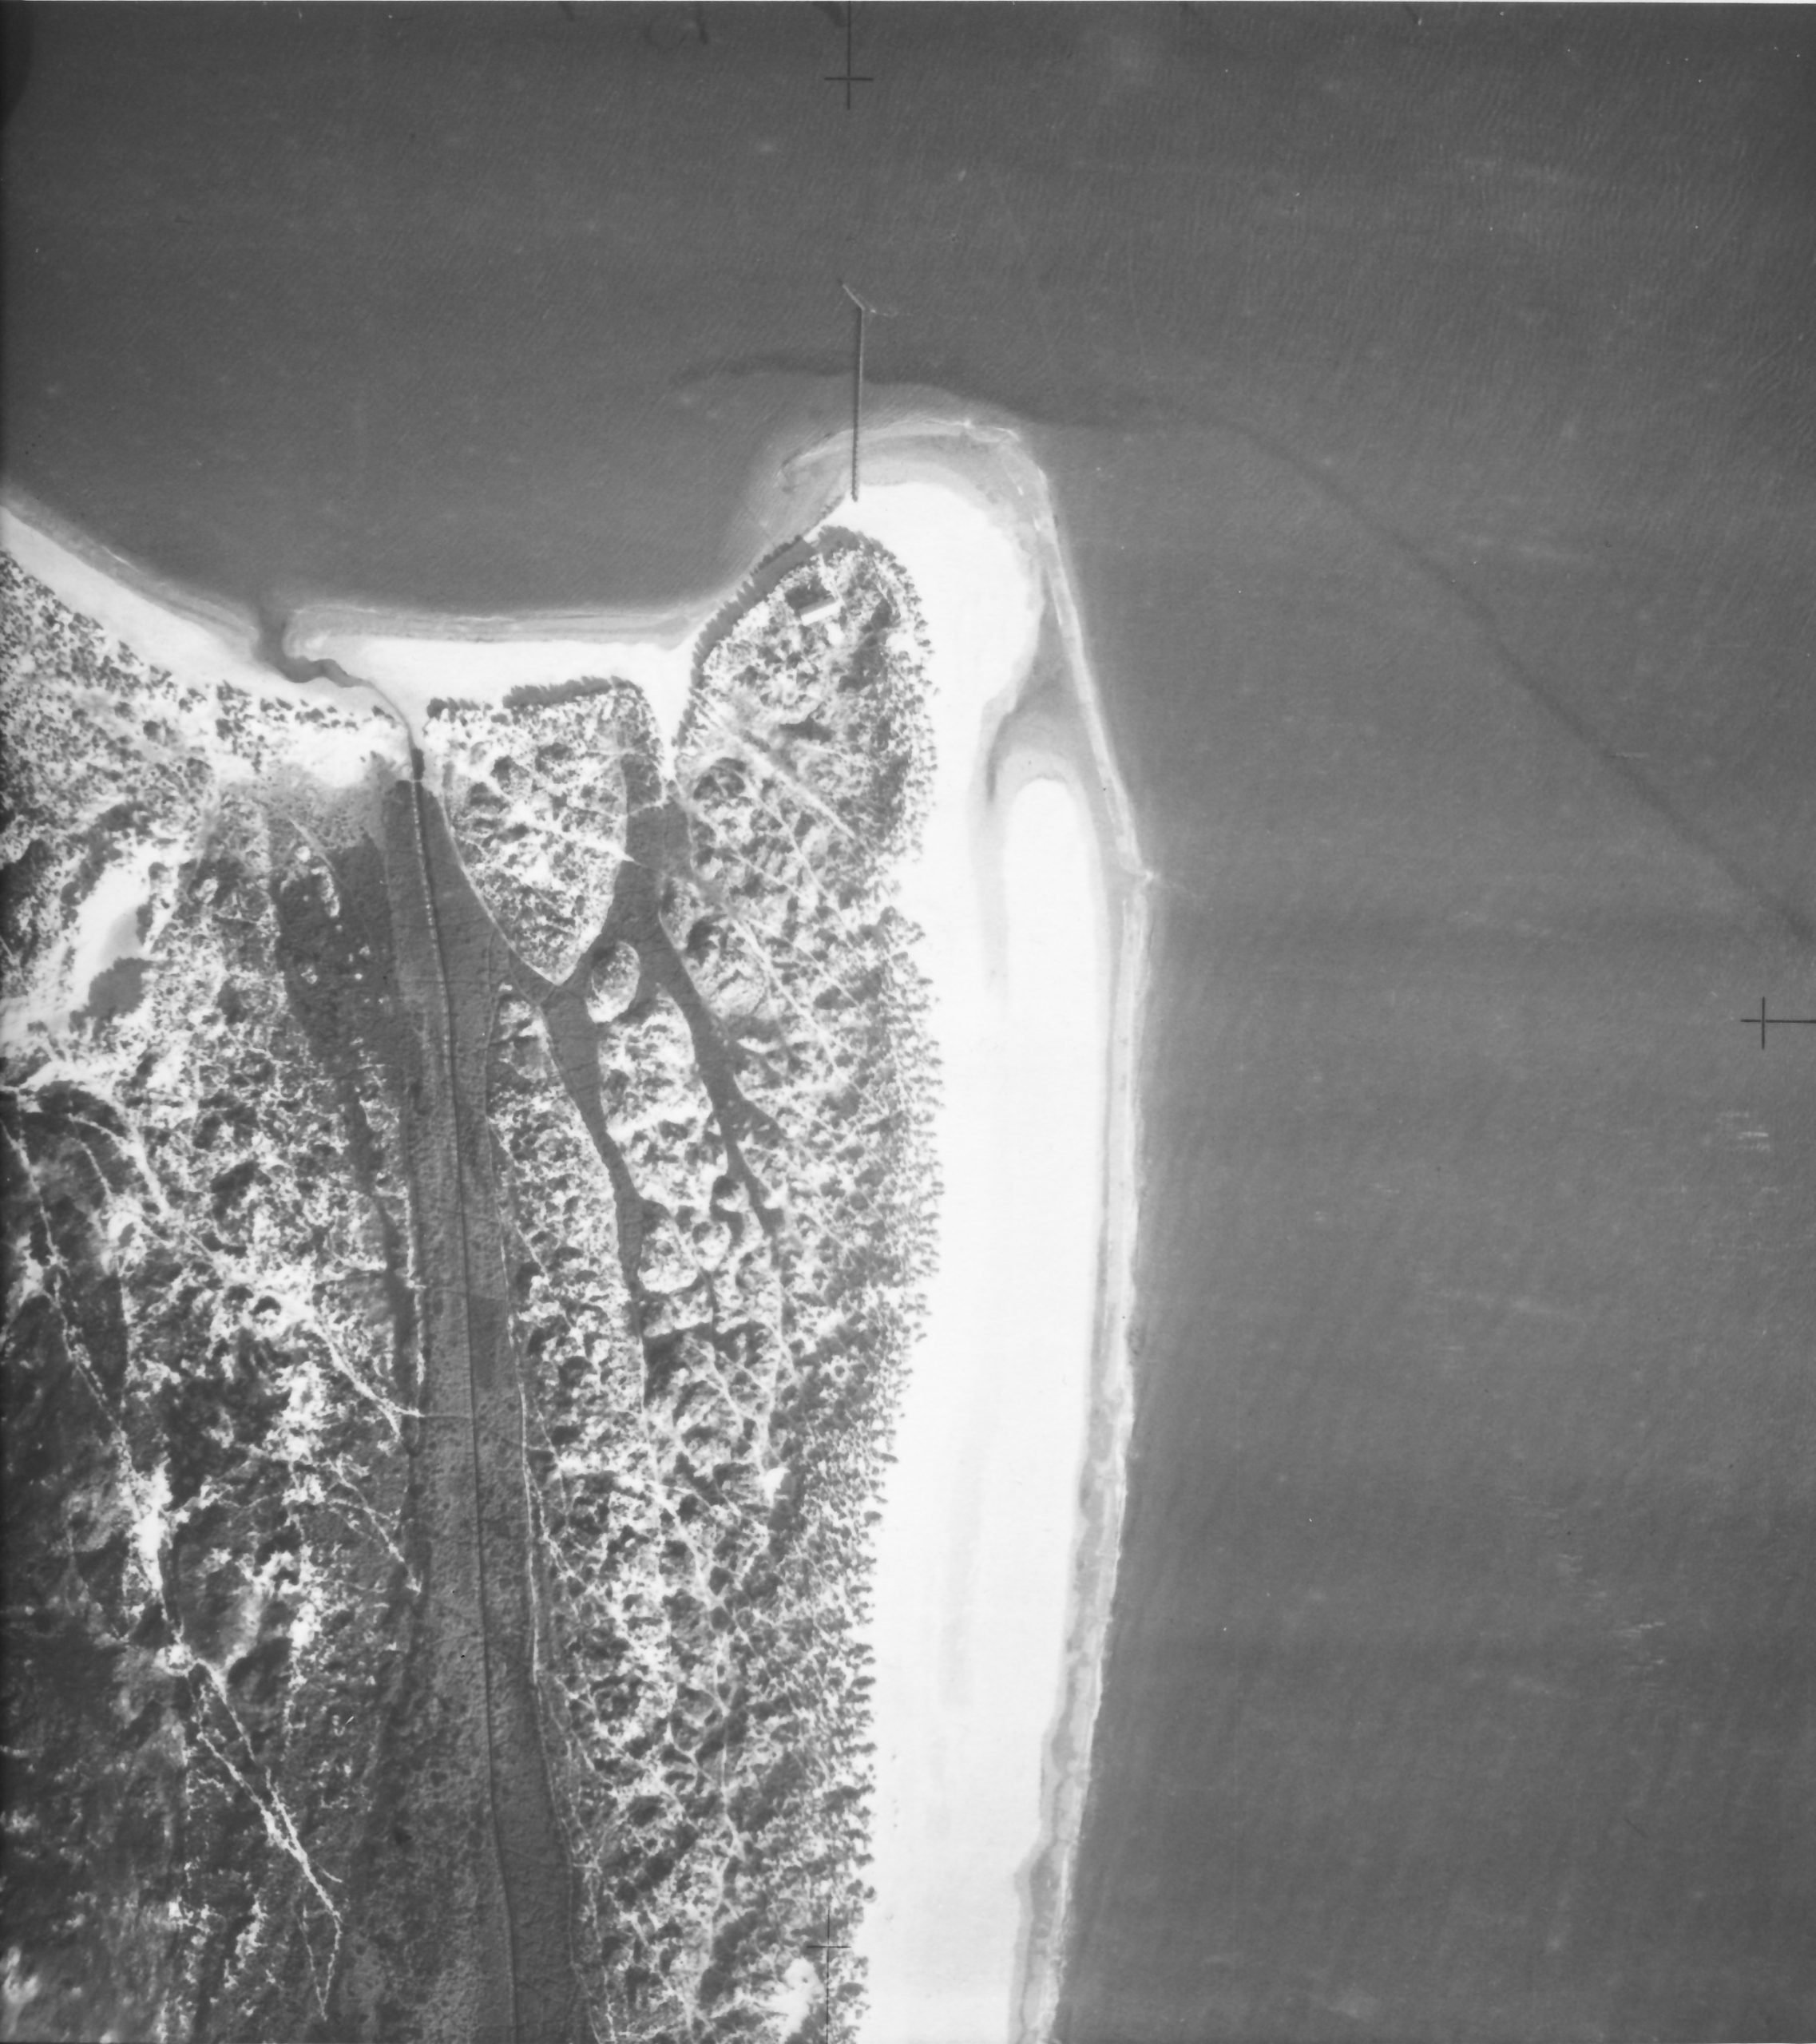 Aerial photograph of Studland Bay from 1930s